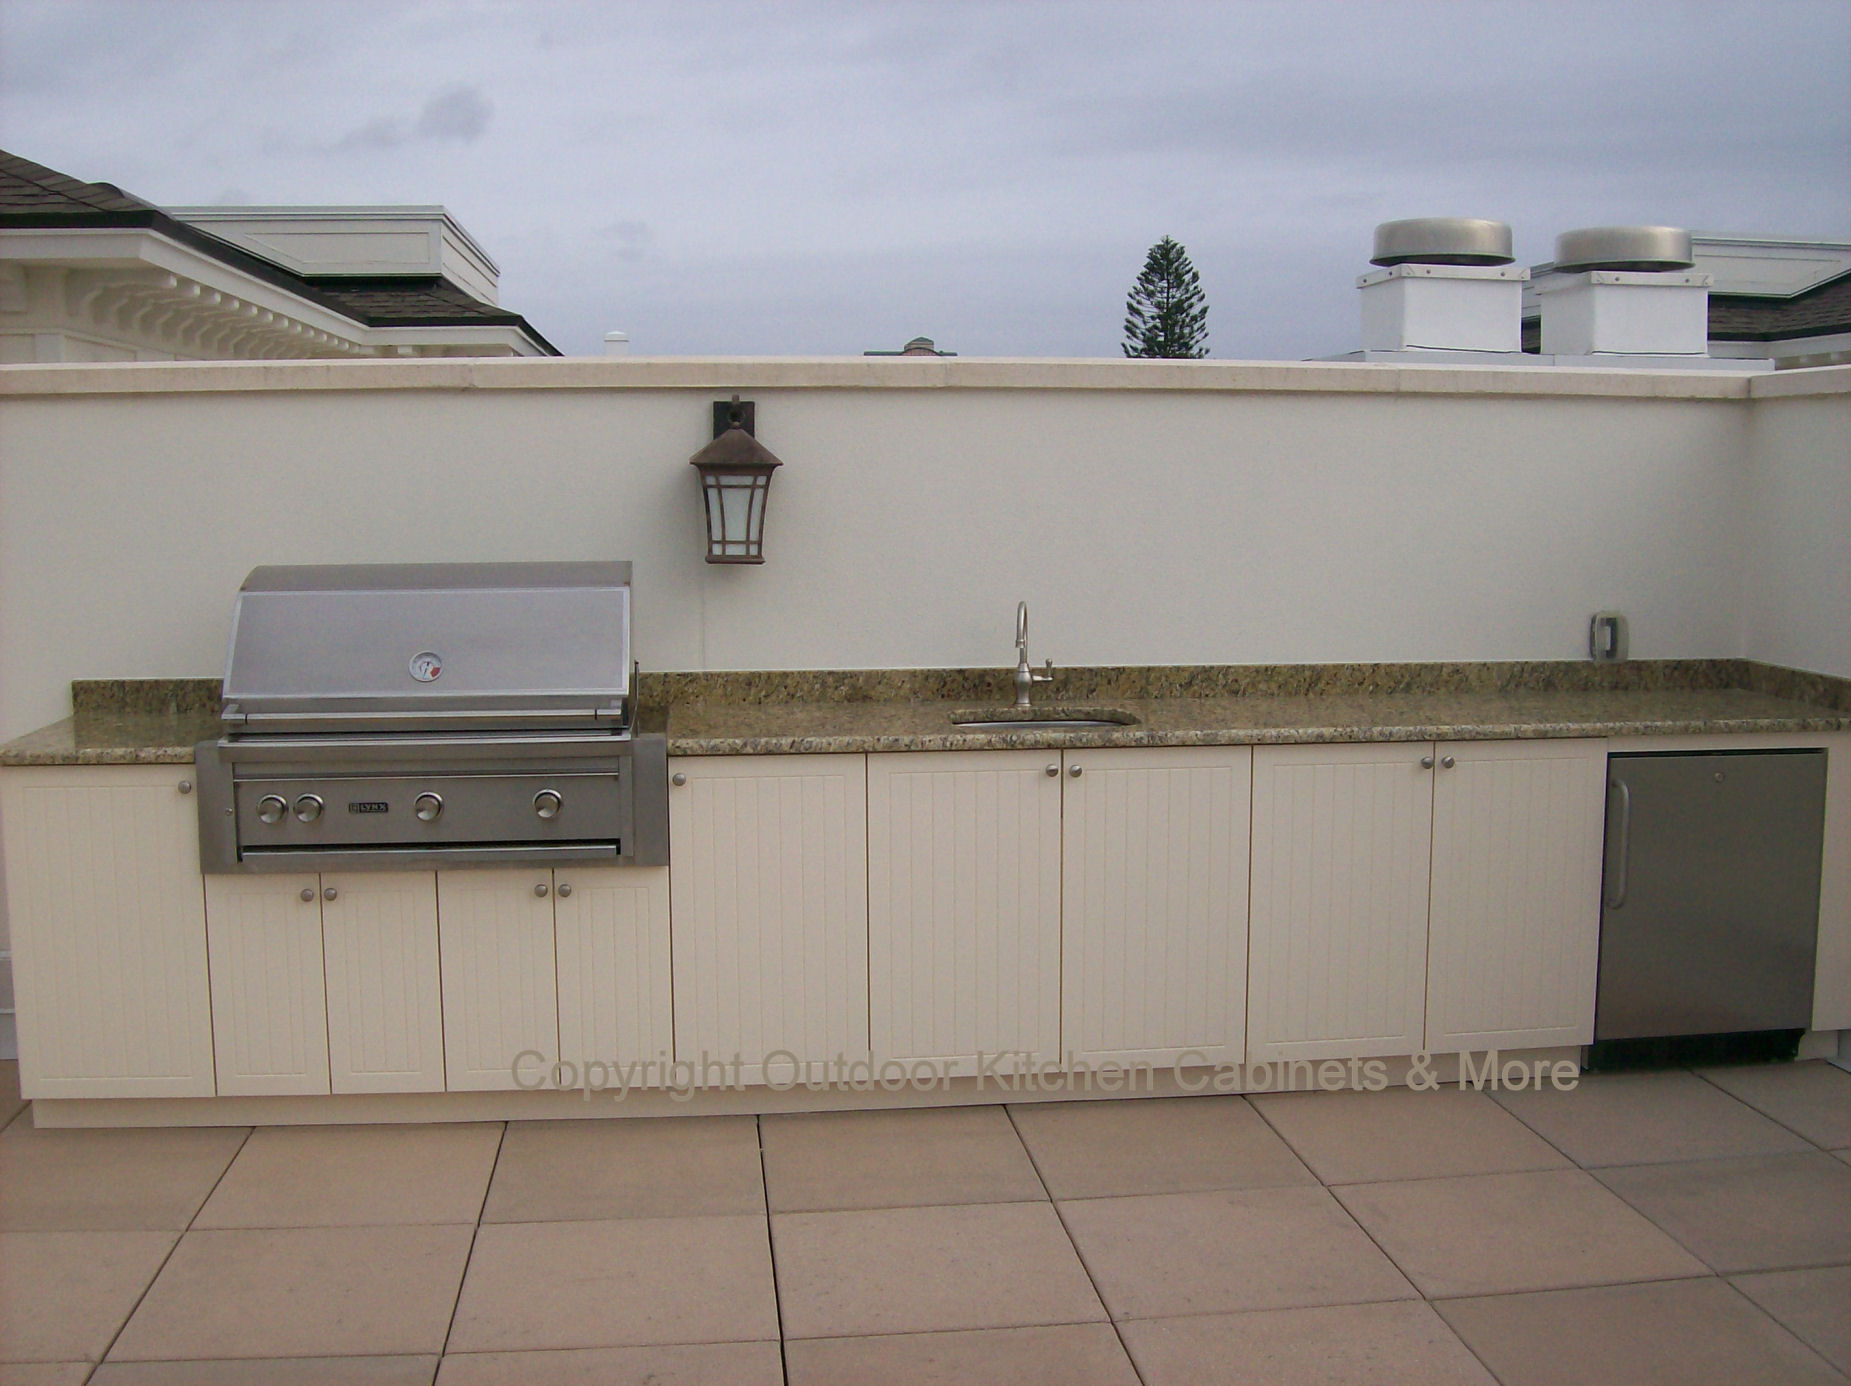 Outdoor kitchen cabinets outdoor kitchen cabinets more for Outdoor kitchen cabinets